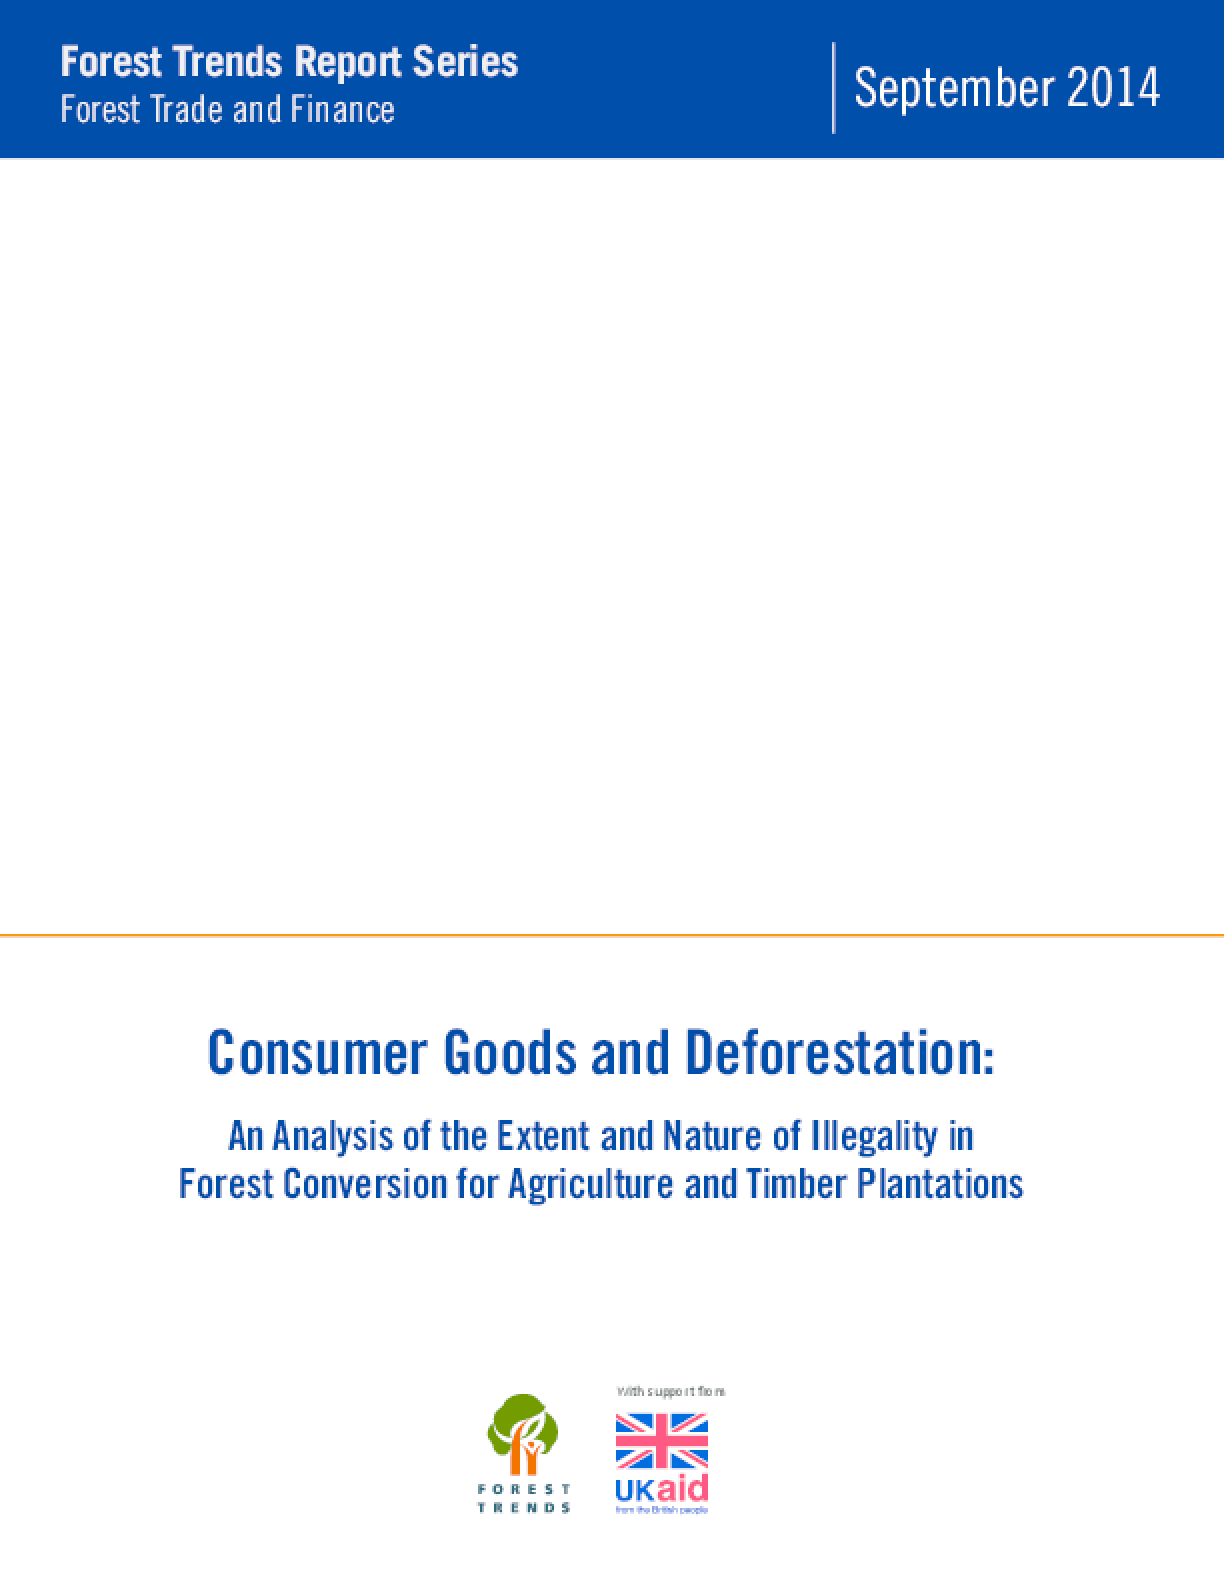 Consumer Goods and Deforestation: An Analysis of the Extent and Nature of Illegality in Forest Conversion for Agriculture and Timber Plantations